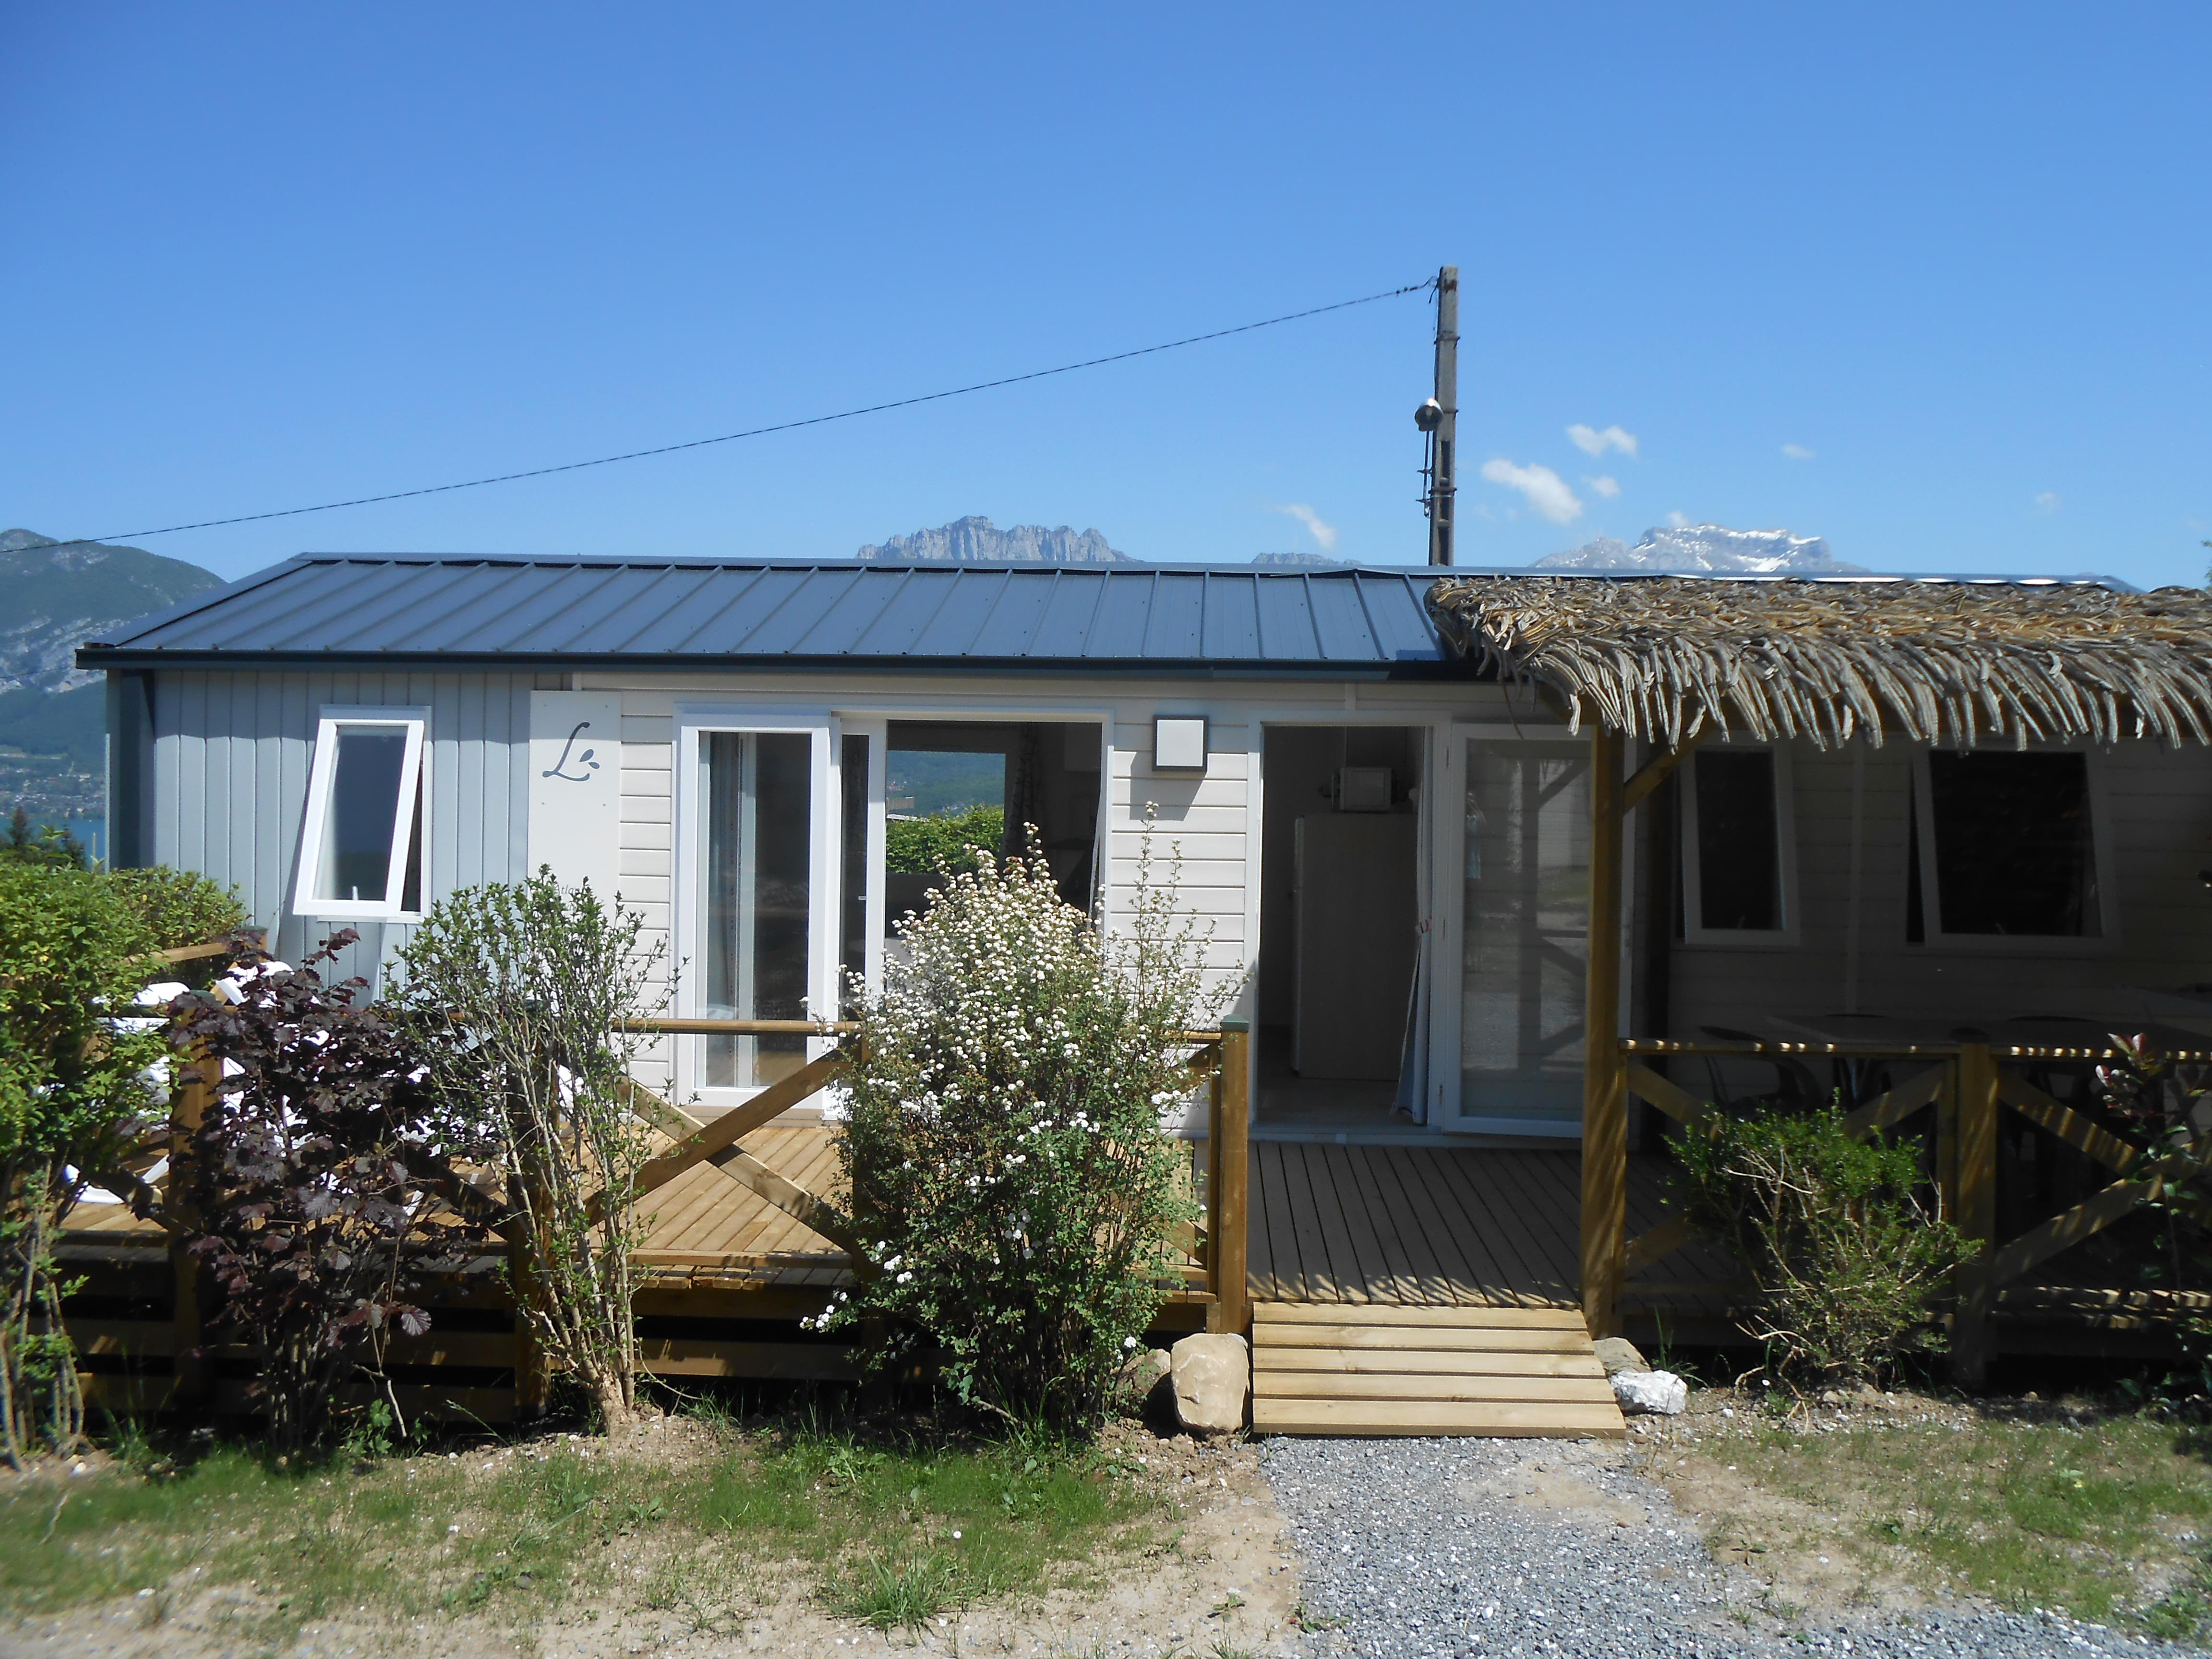 Accommodation - Mobil Home Atlantic 38M² - 3 Bedrooms, 2 Bathrooms - Camping Le Panoramic